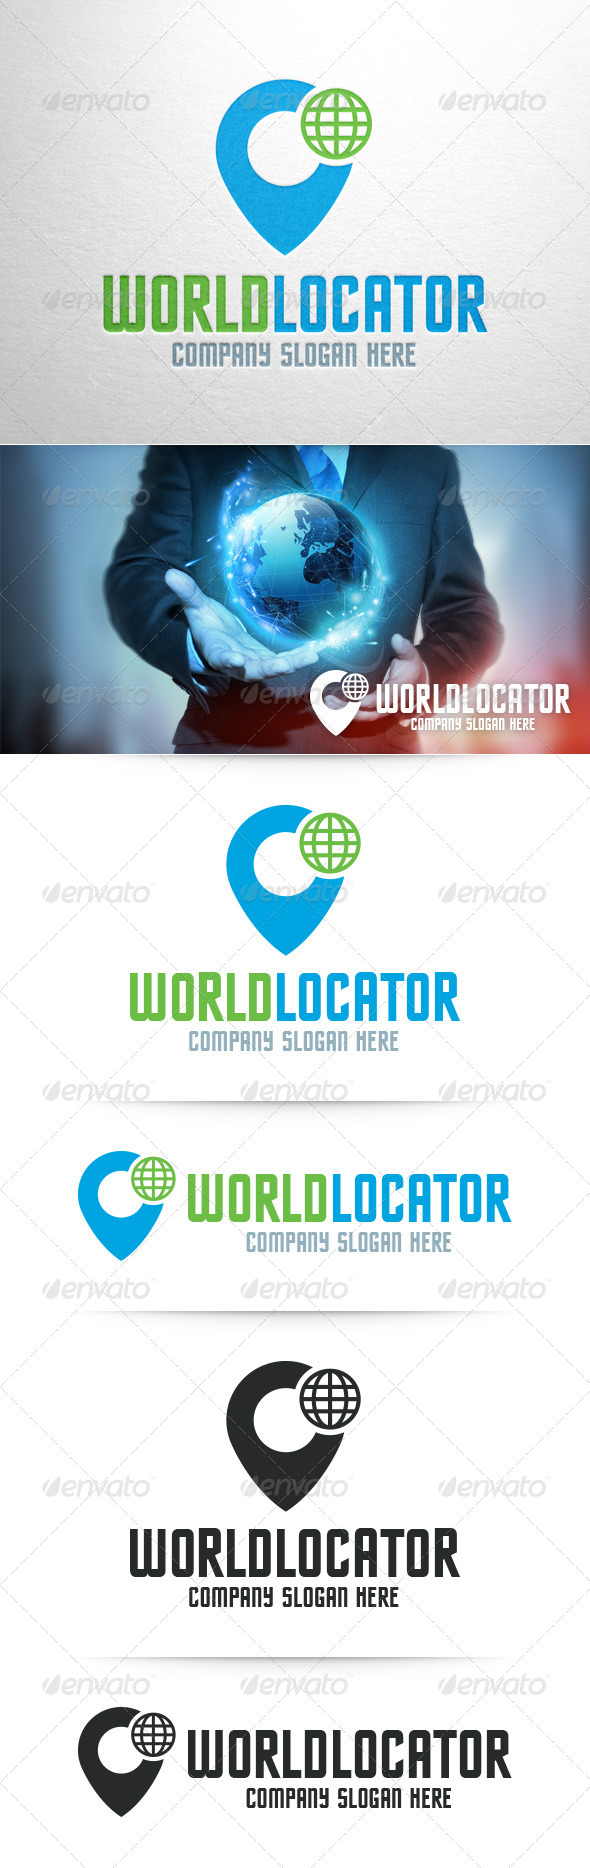 GraphicRiver World Locator Logo Template 8373105